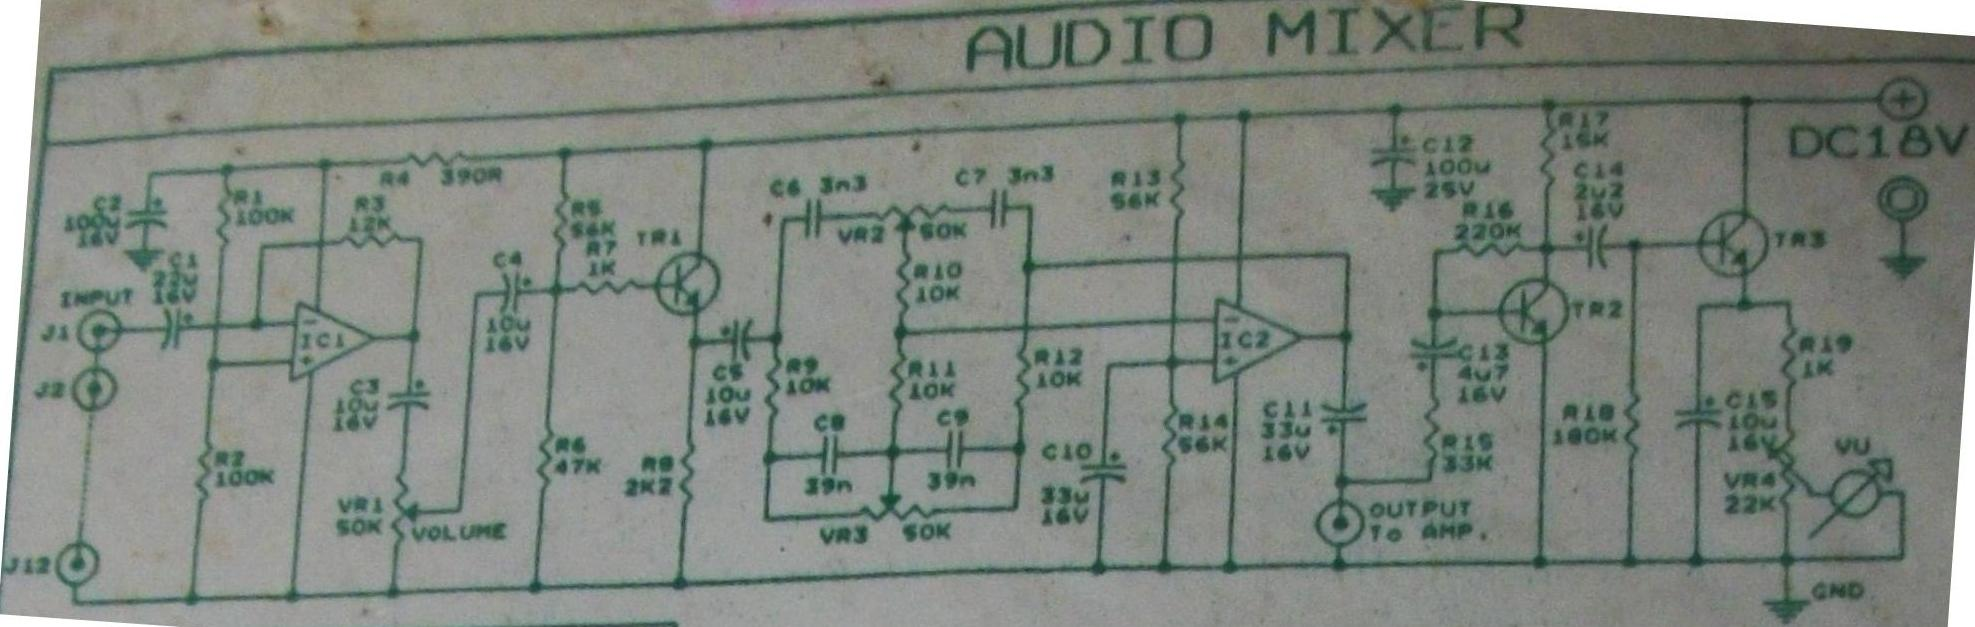 Audio Mixer + VU Meter